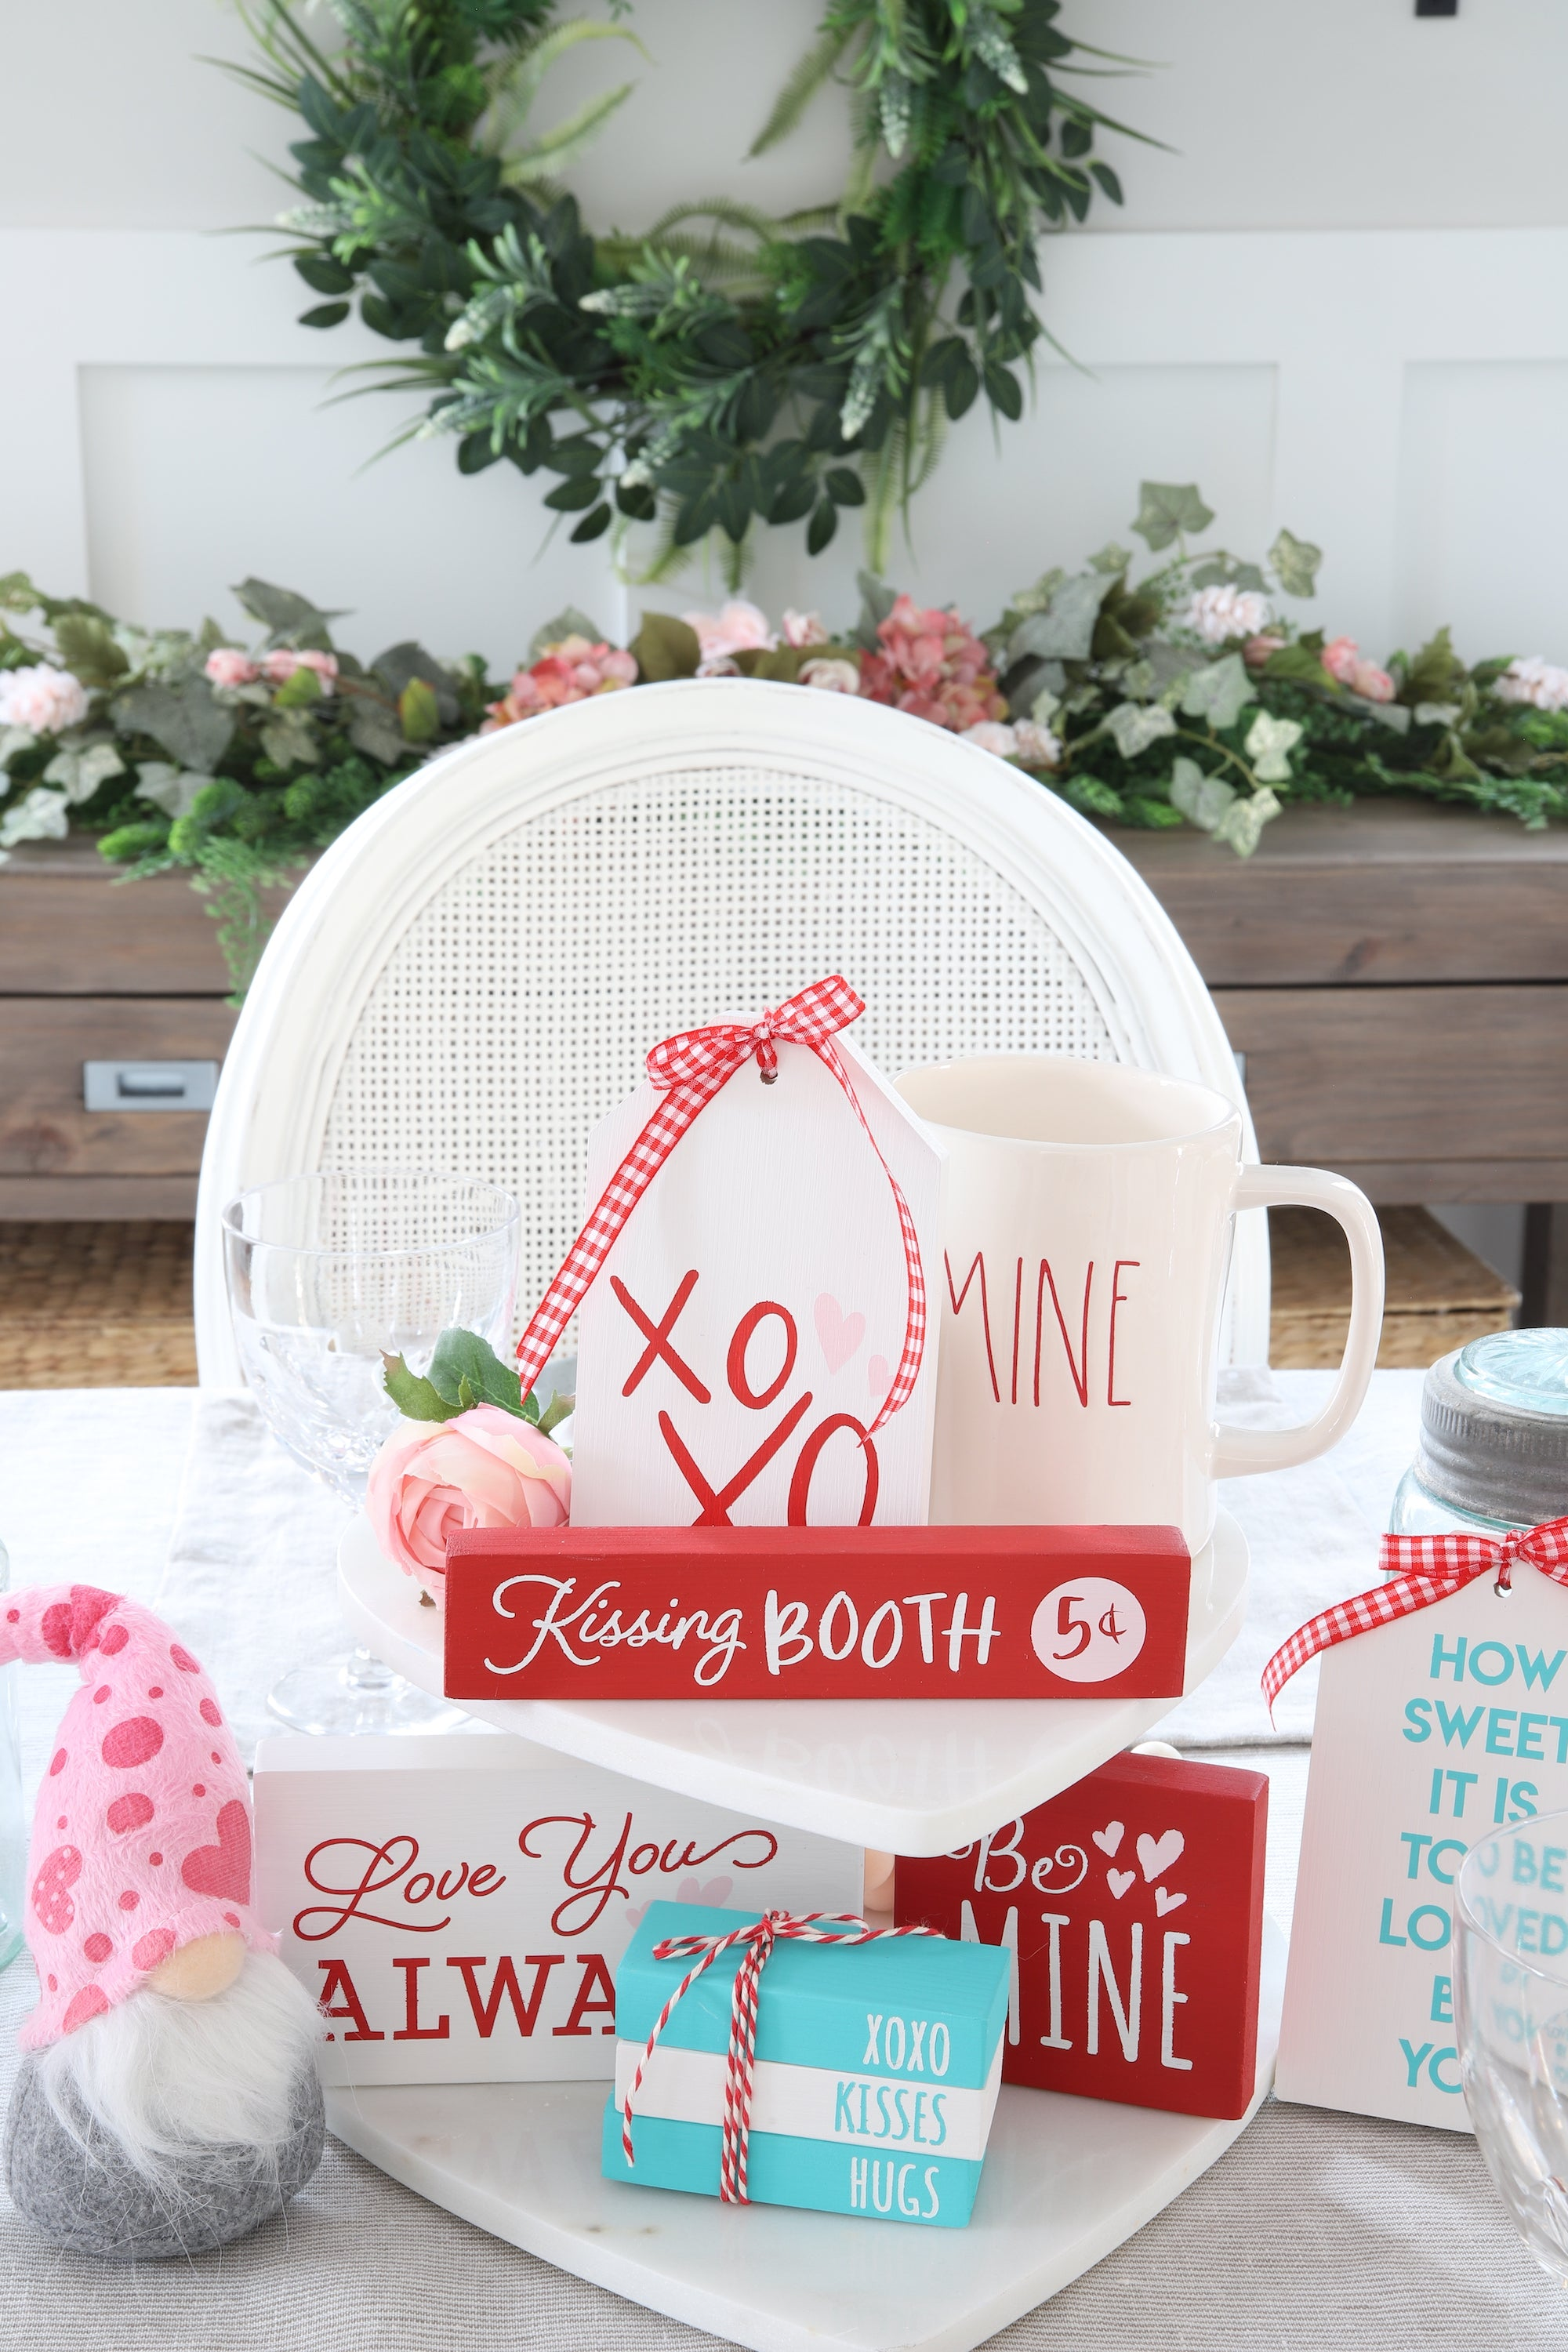 Farmhouse Valentines Day Decorating - Featuring Our New Tiered Tray DIY Kit! - Homeworks Etc.